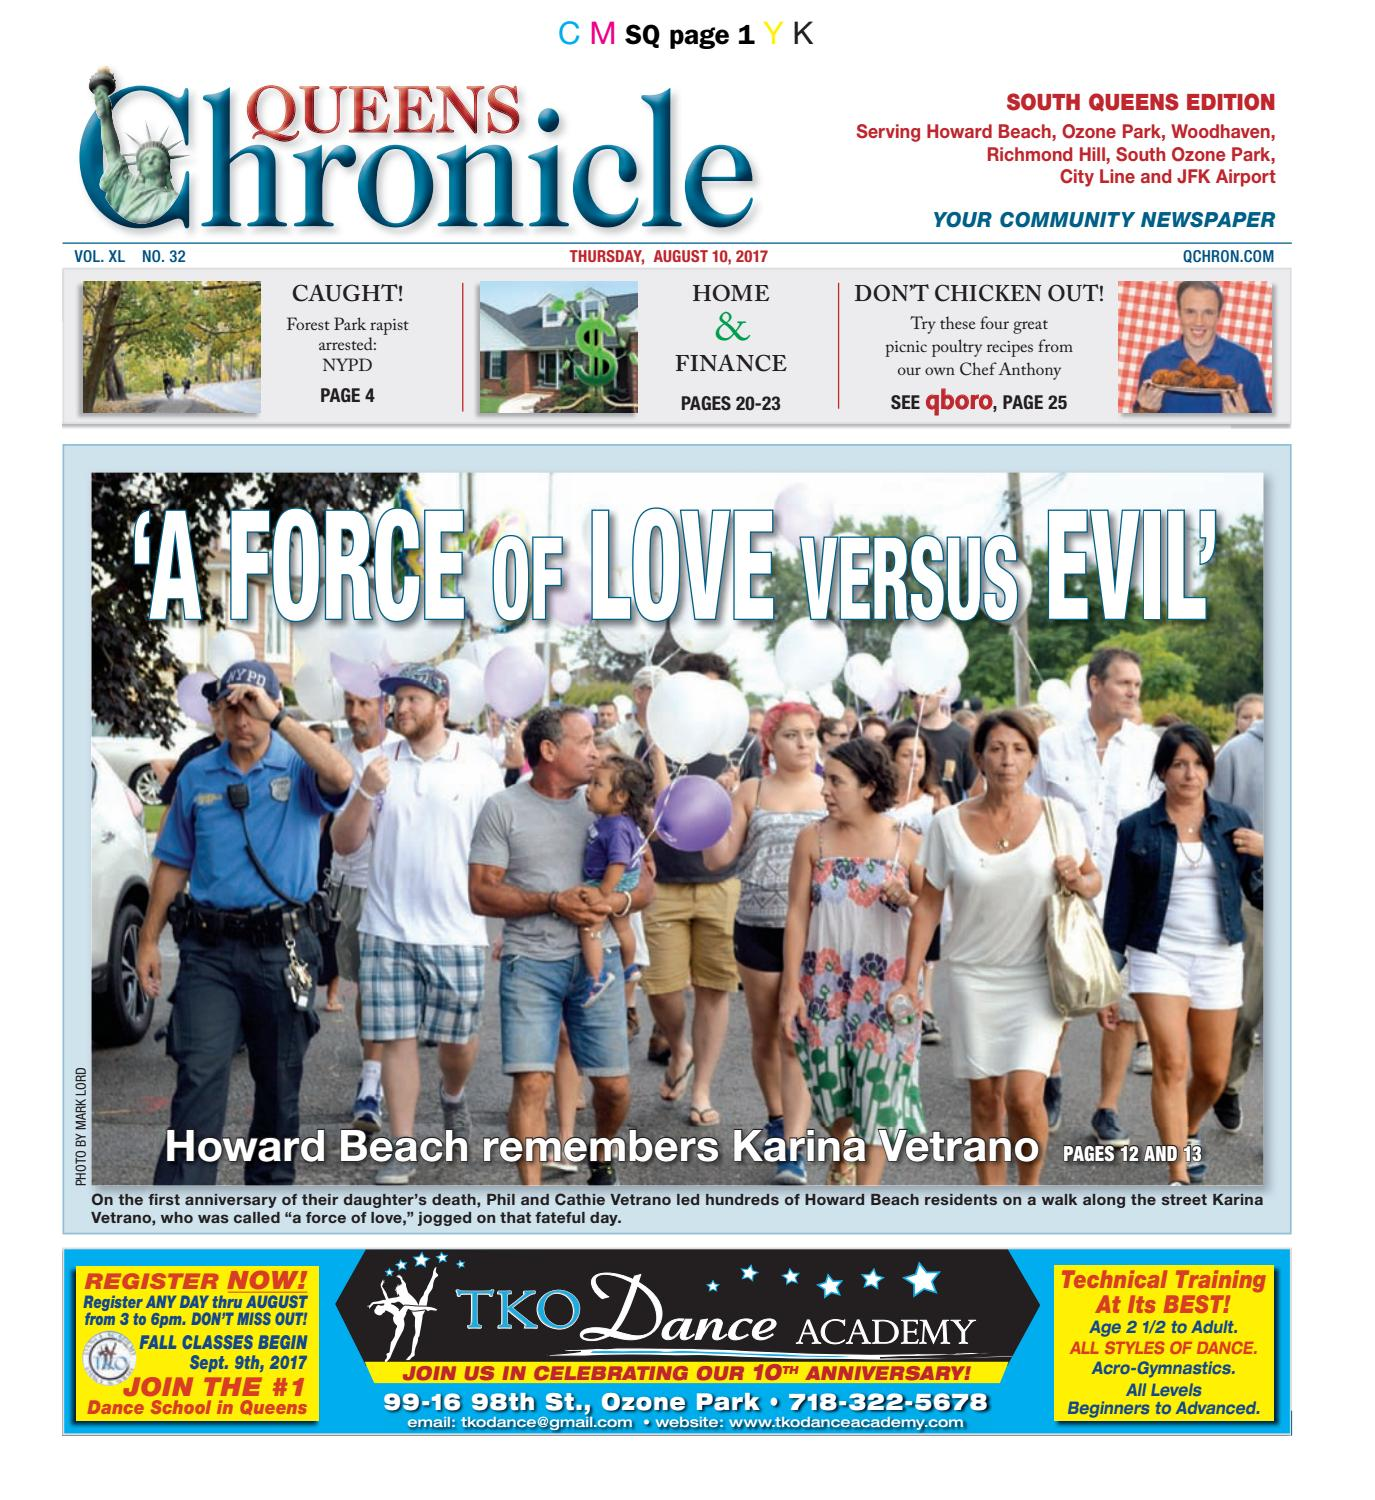 Queens Chronicle South Edition 08 10 17 by Queens Chronicle issuu